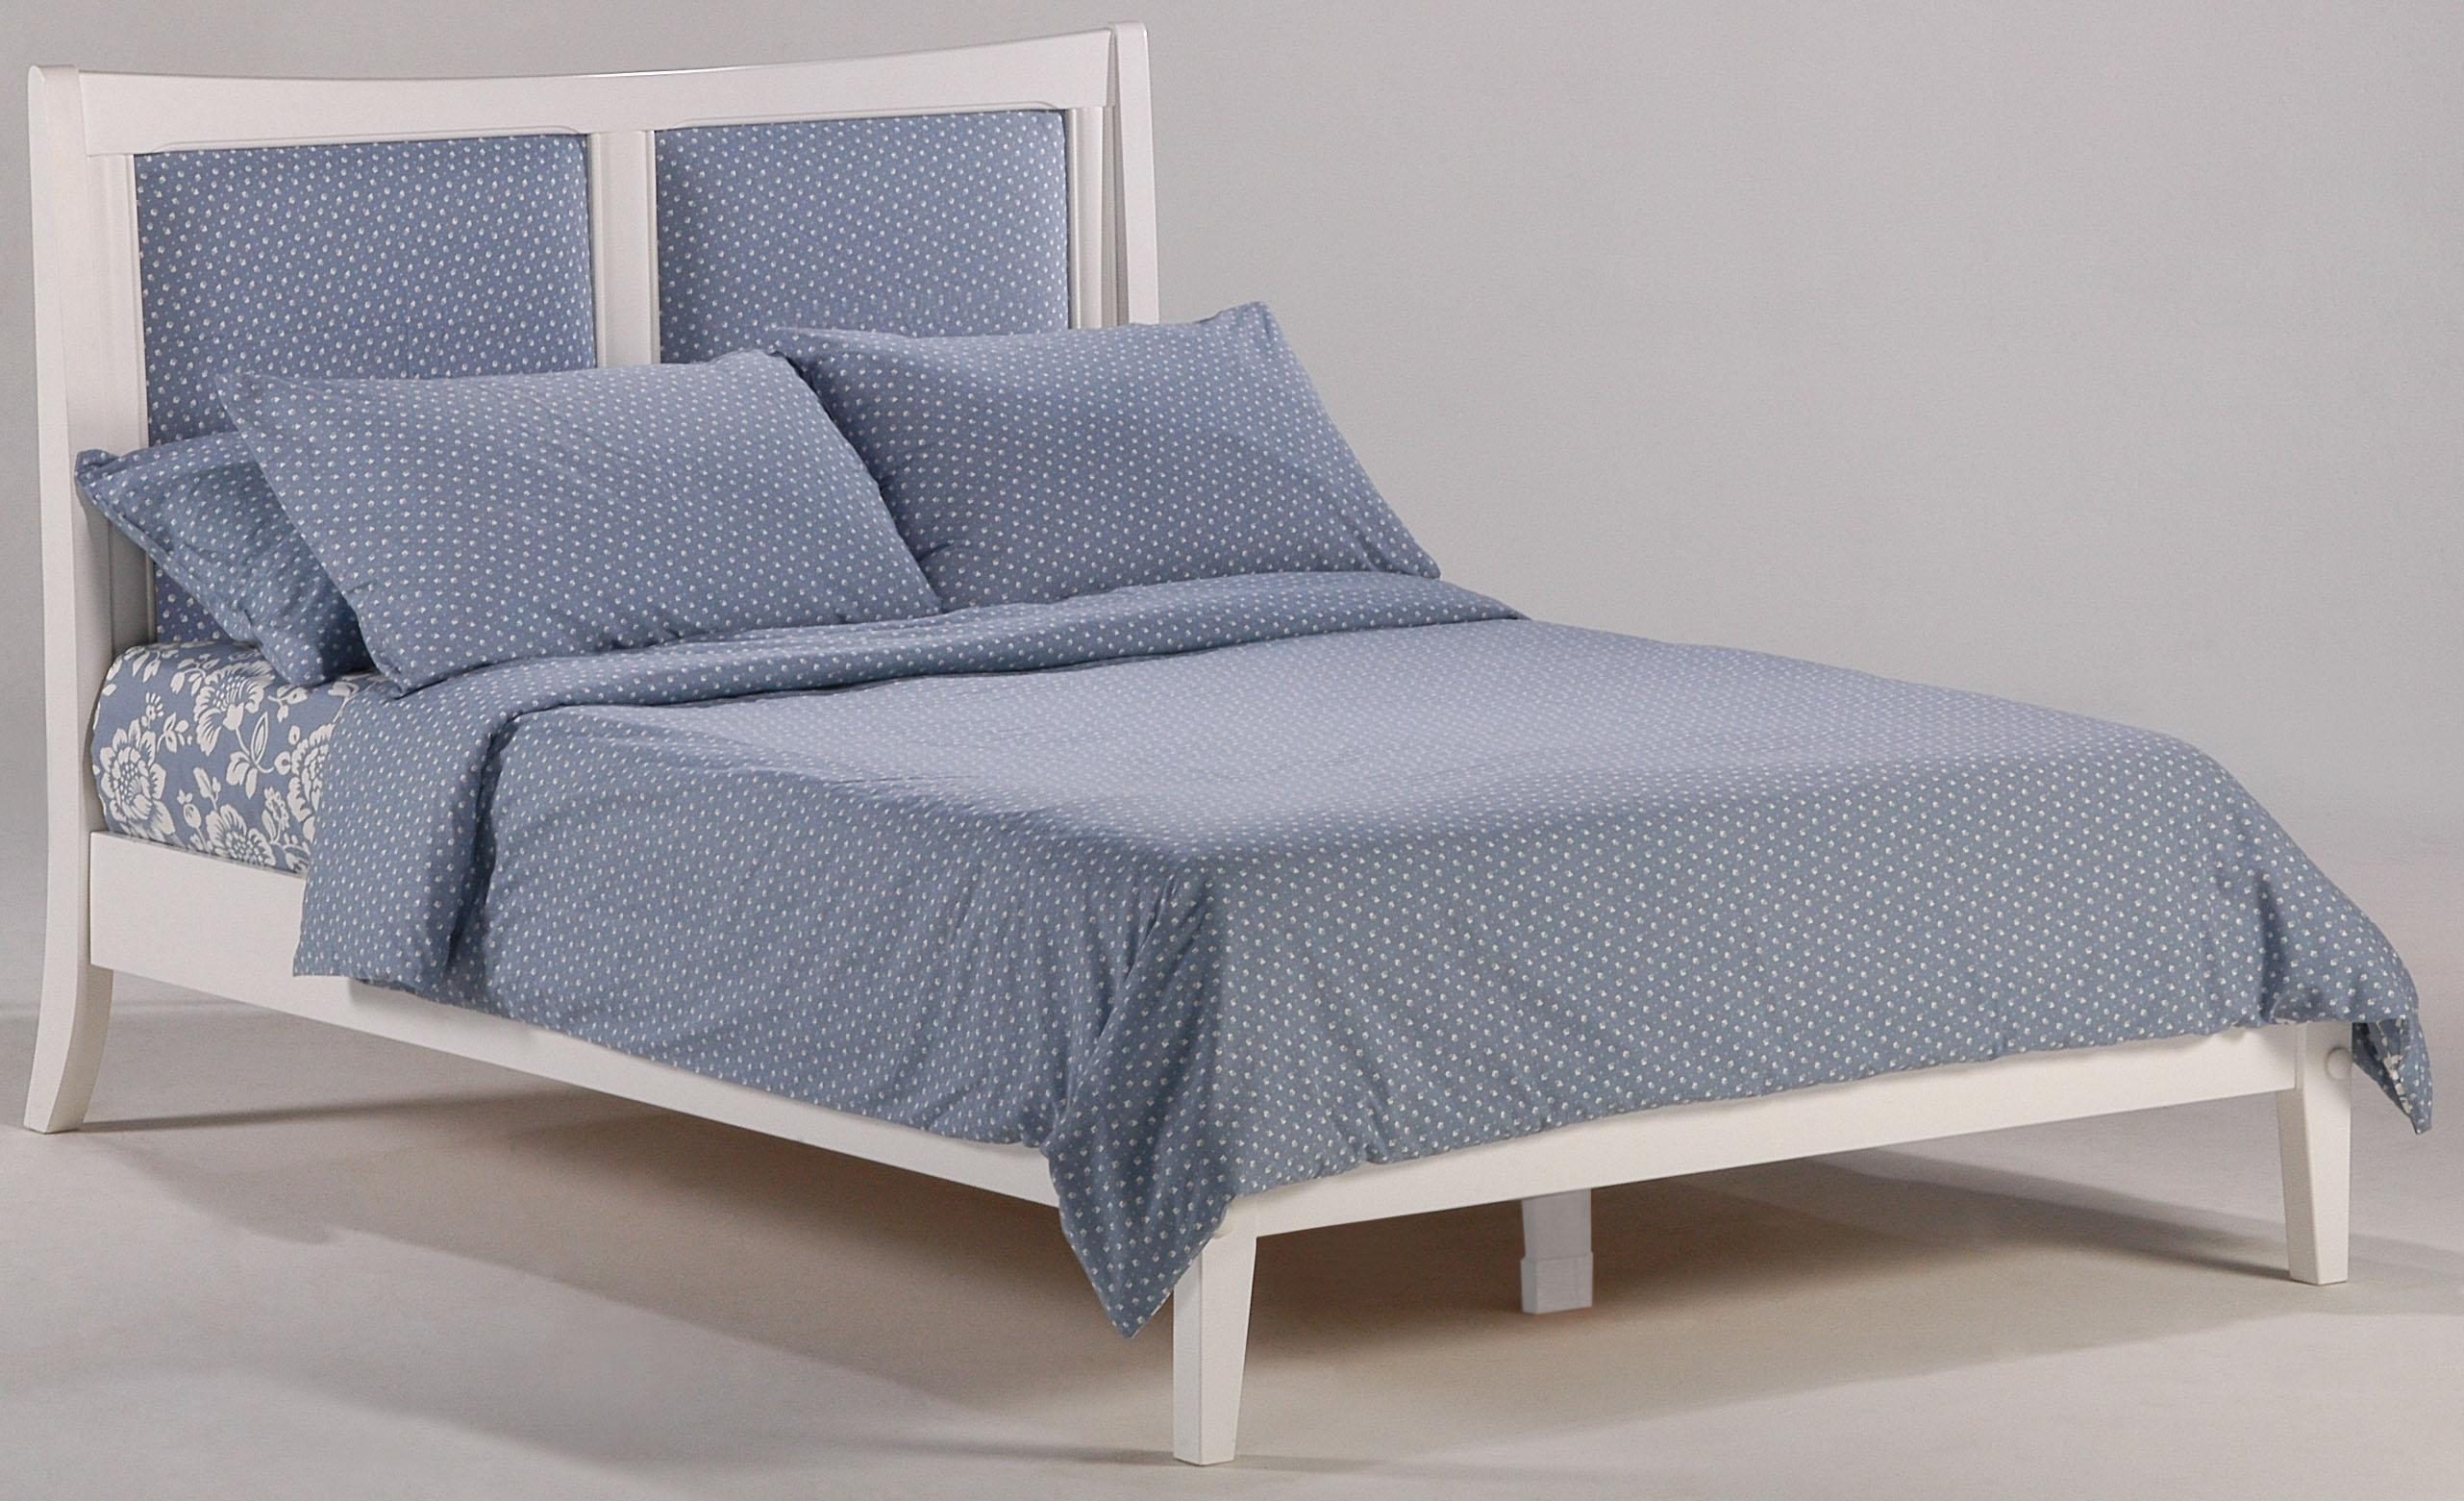 Spice Twin Bed by Night & Day Furniture at Godby Home Furnishings